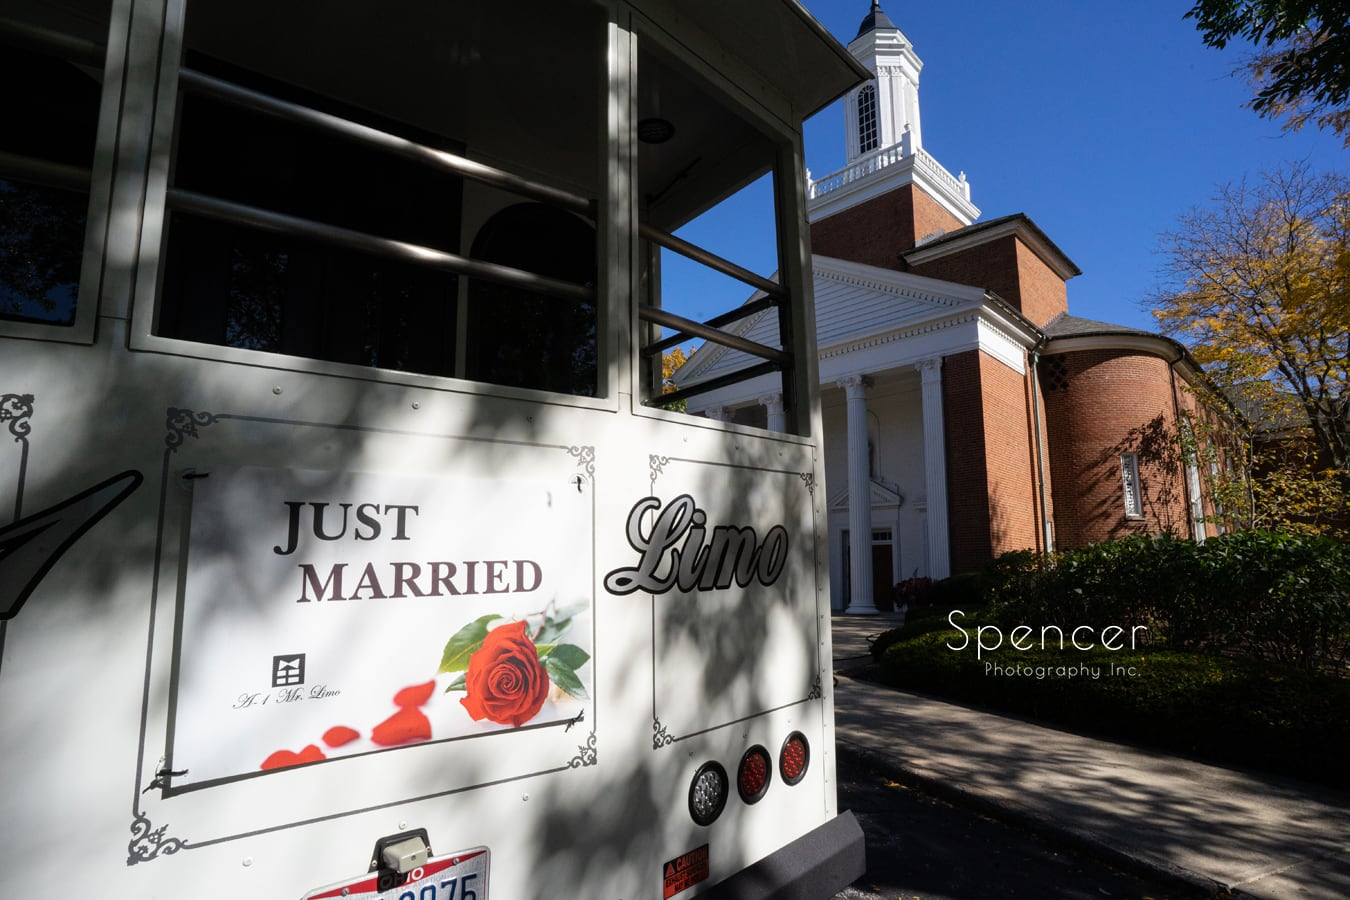 wedding ceremony at St. Dominic in Shaker Heights